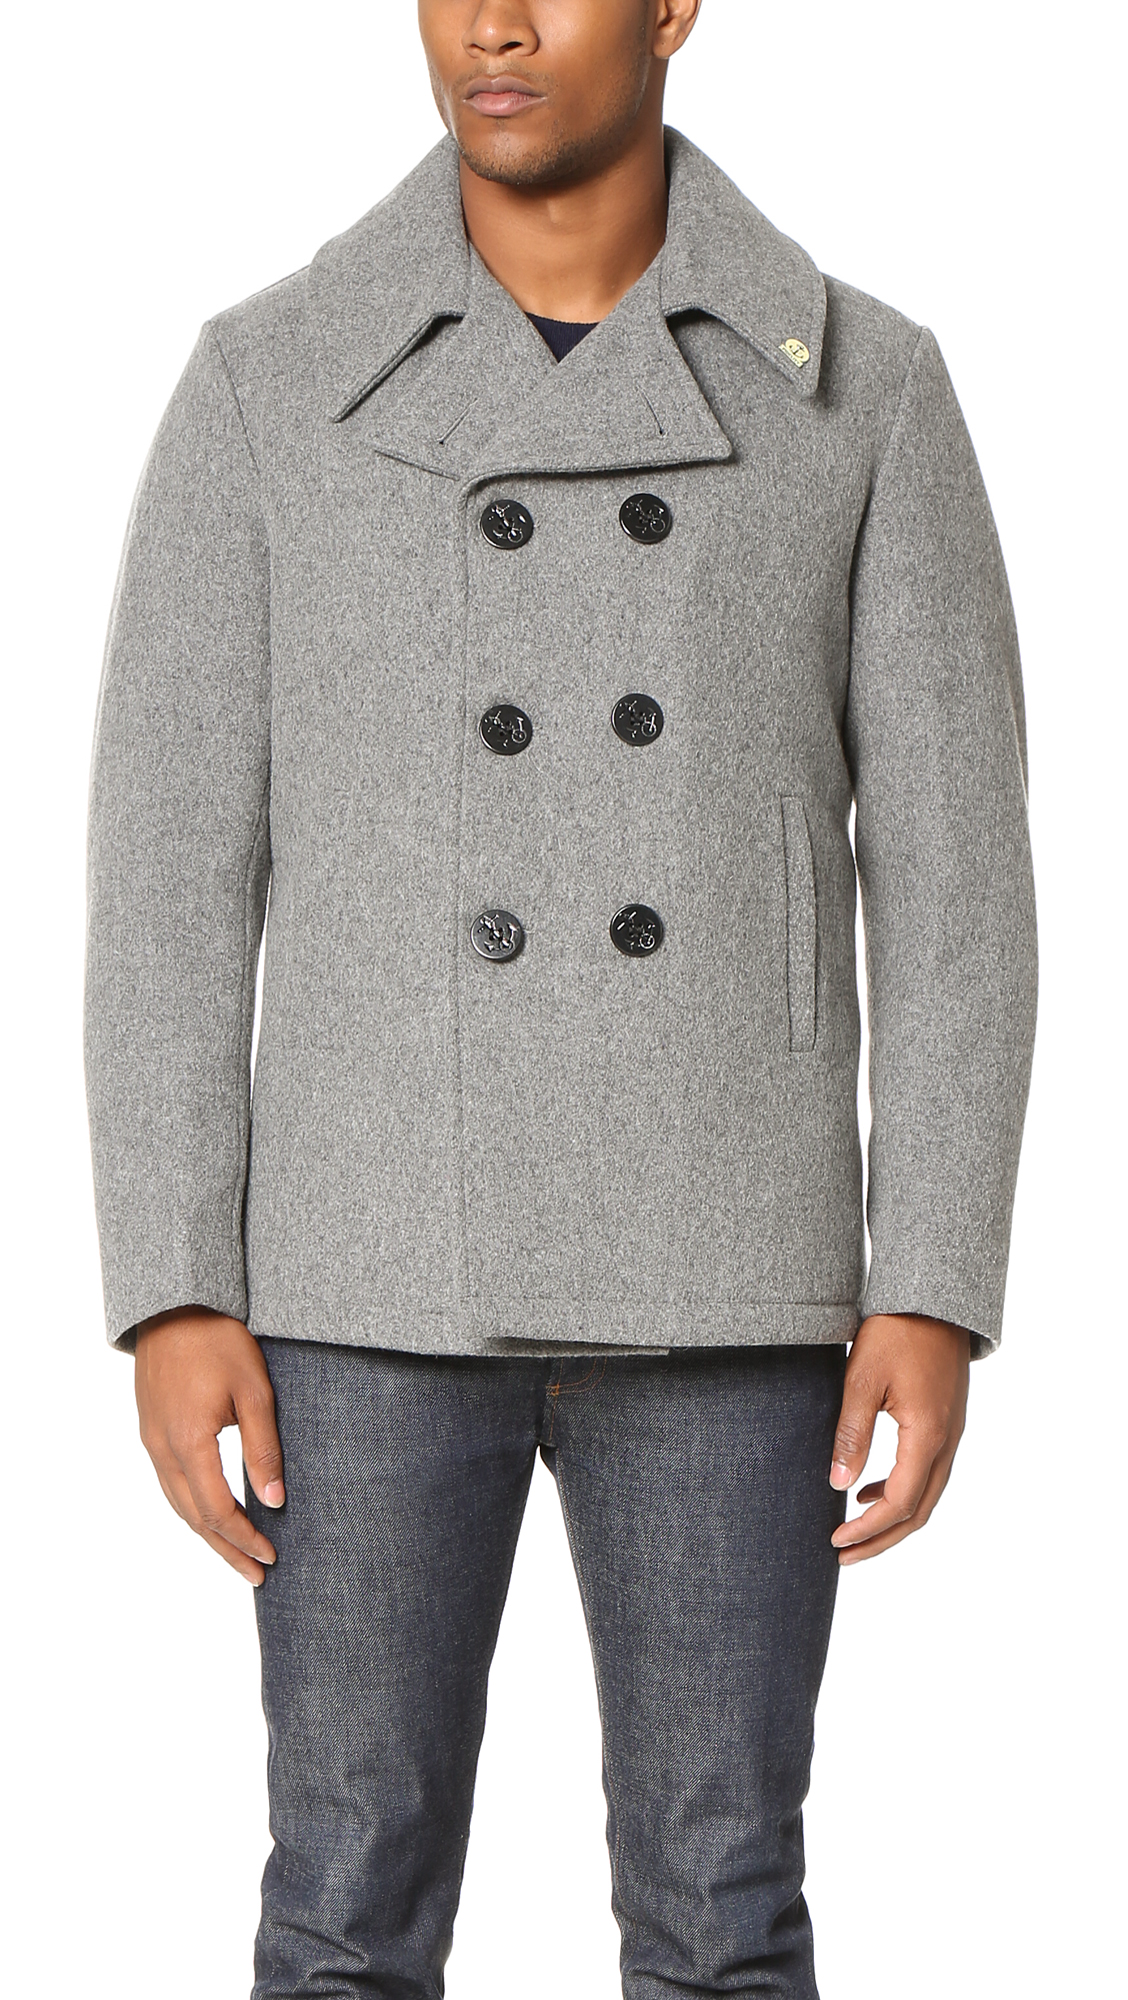 Gerald & Stewart by Fidelity Wool Quilt Lined Pea Coat | EAST DANE ... : quilted pea coat - Adamdwight.com